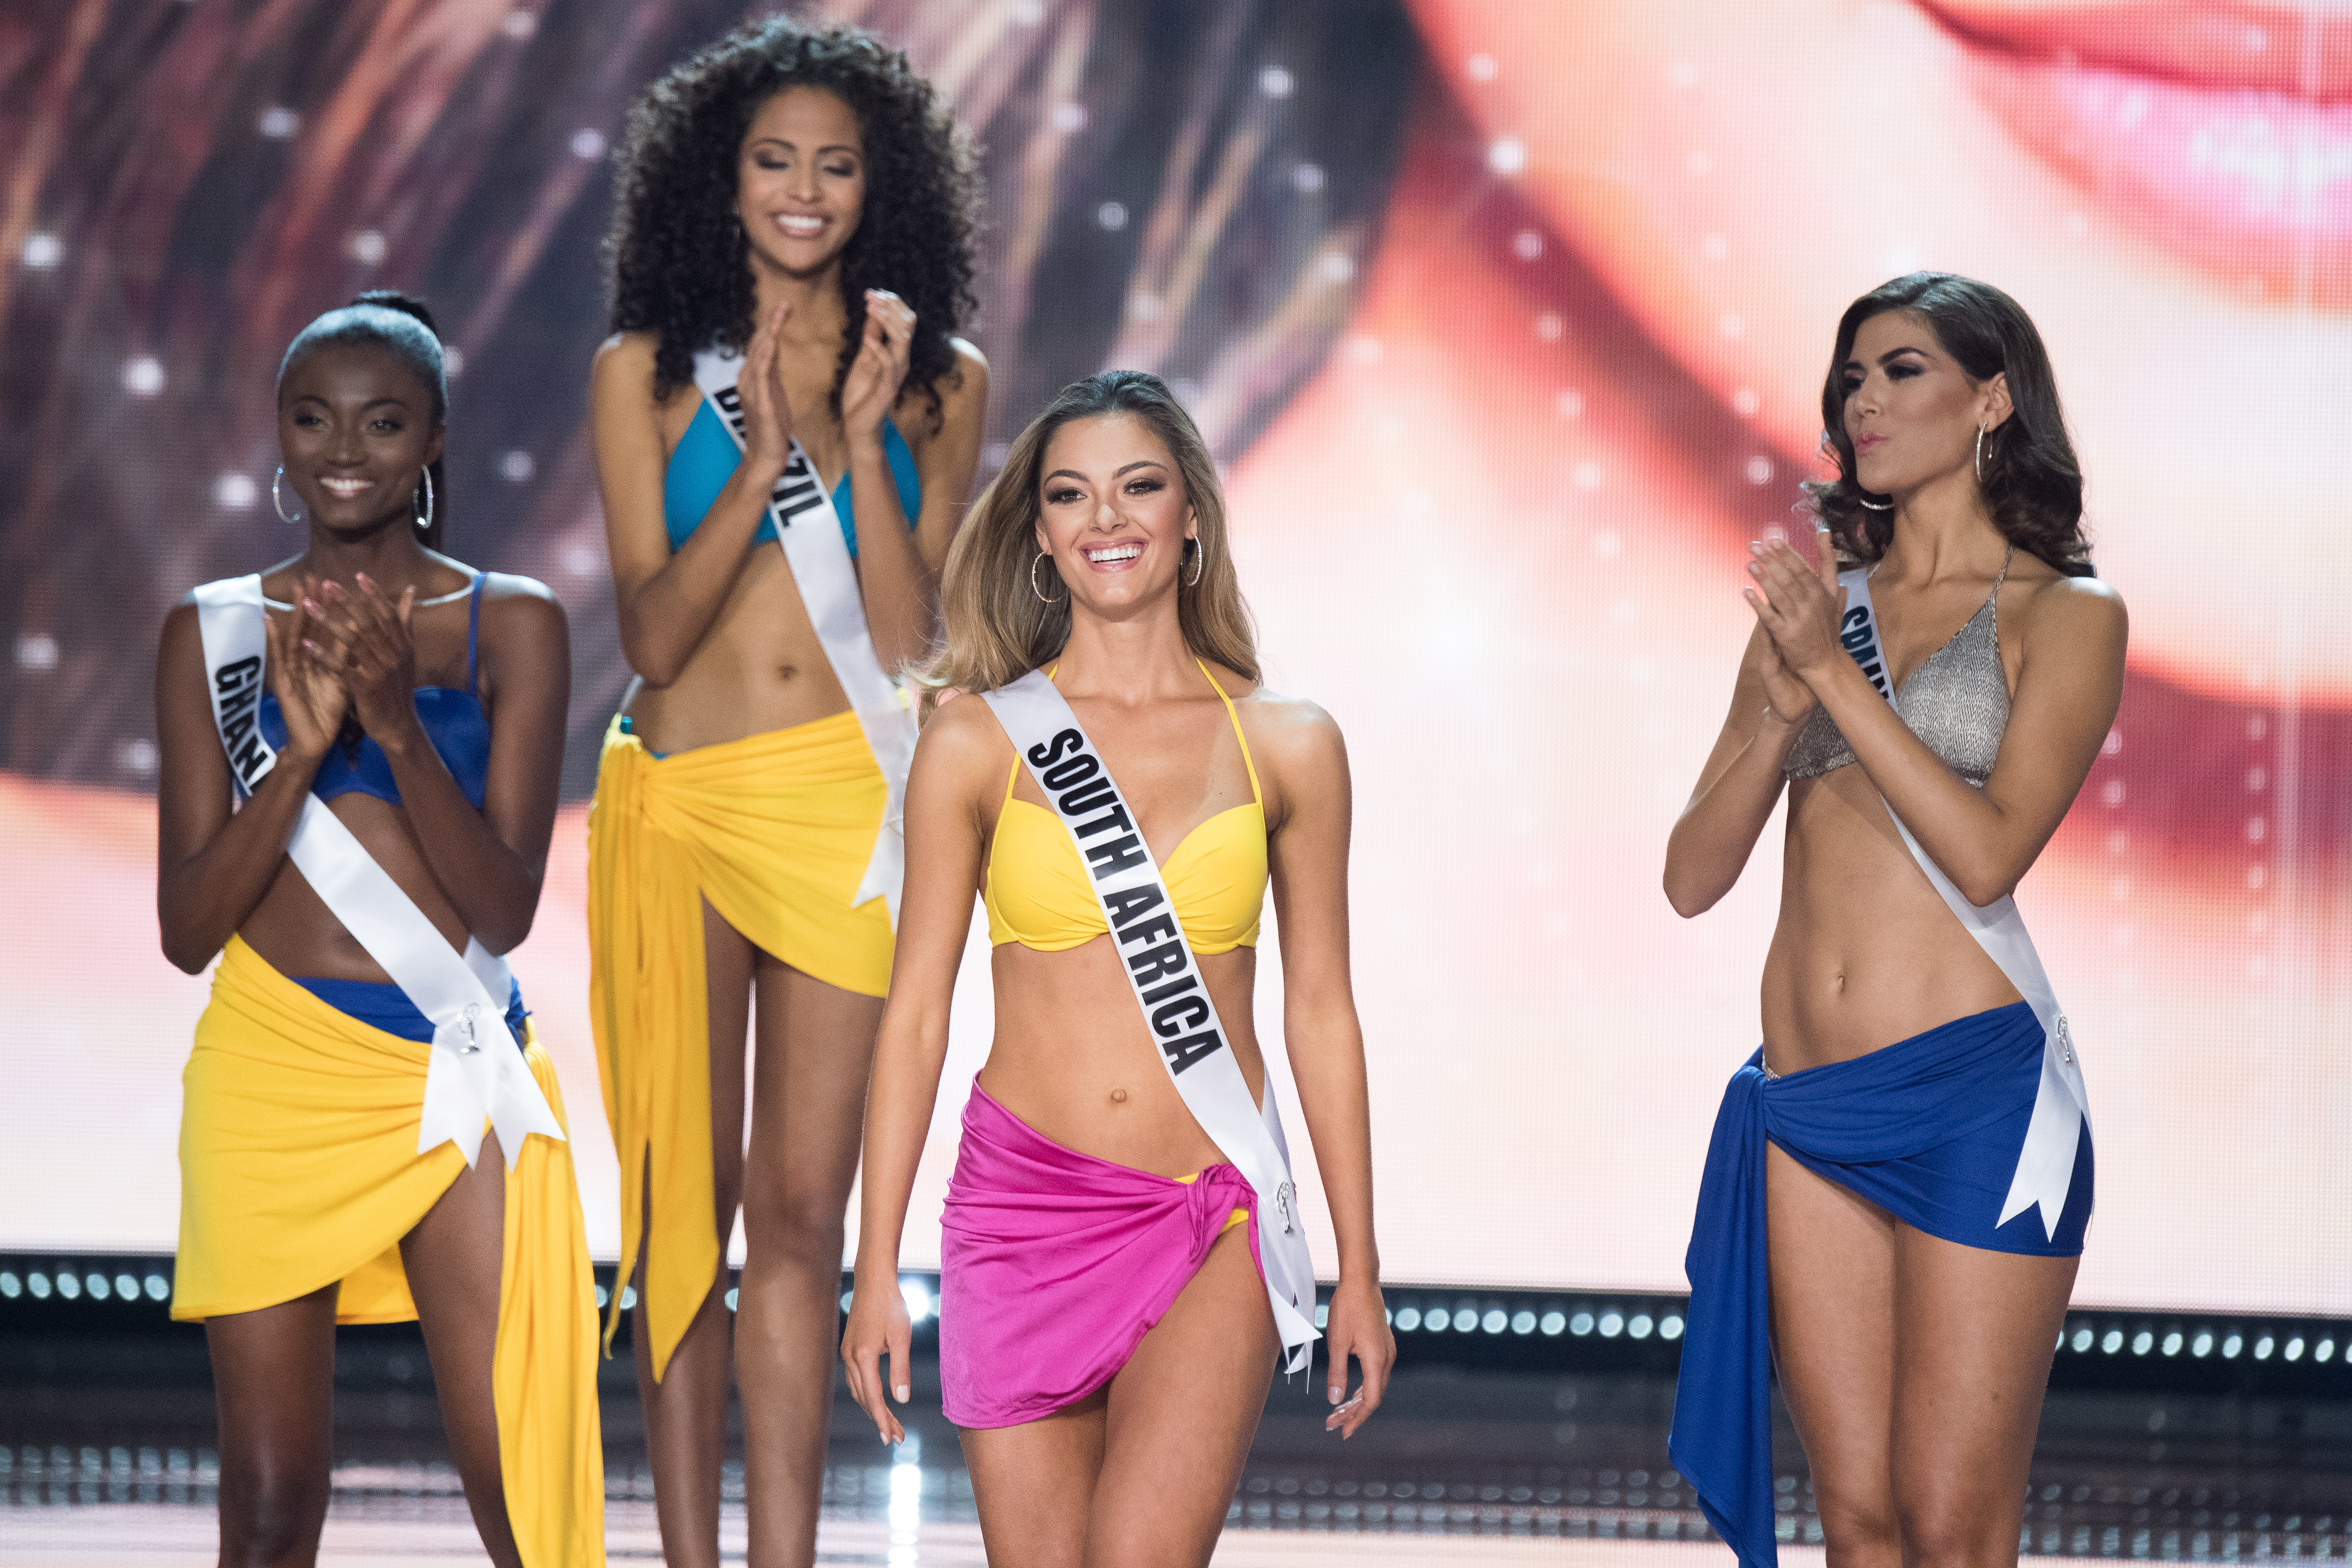 IN PHOTOS: Miss Universe 2017 swimsuit competition